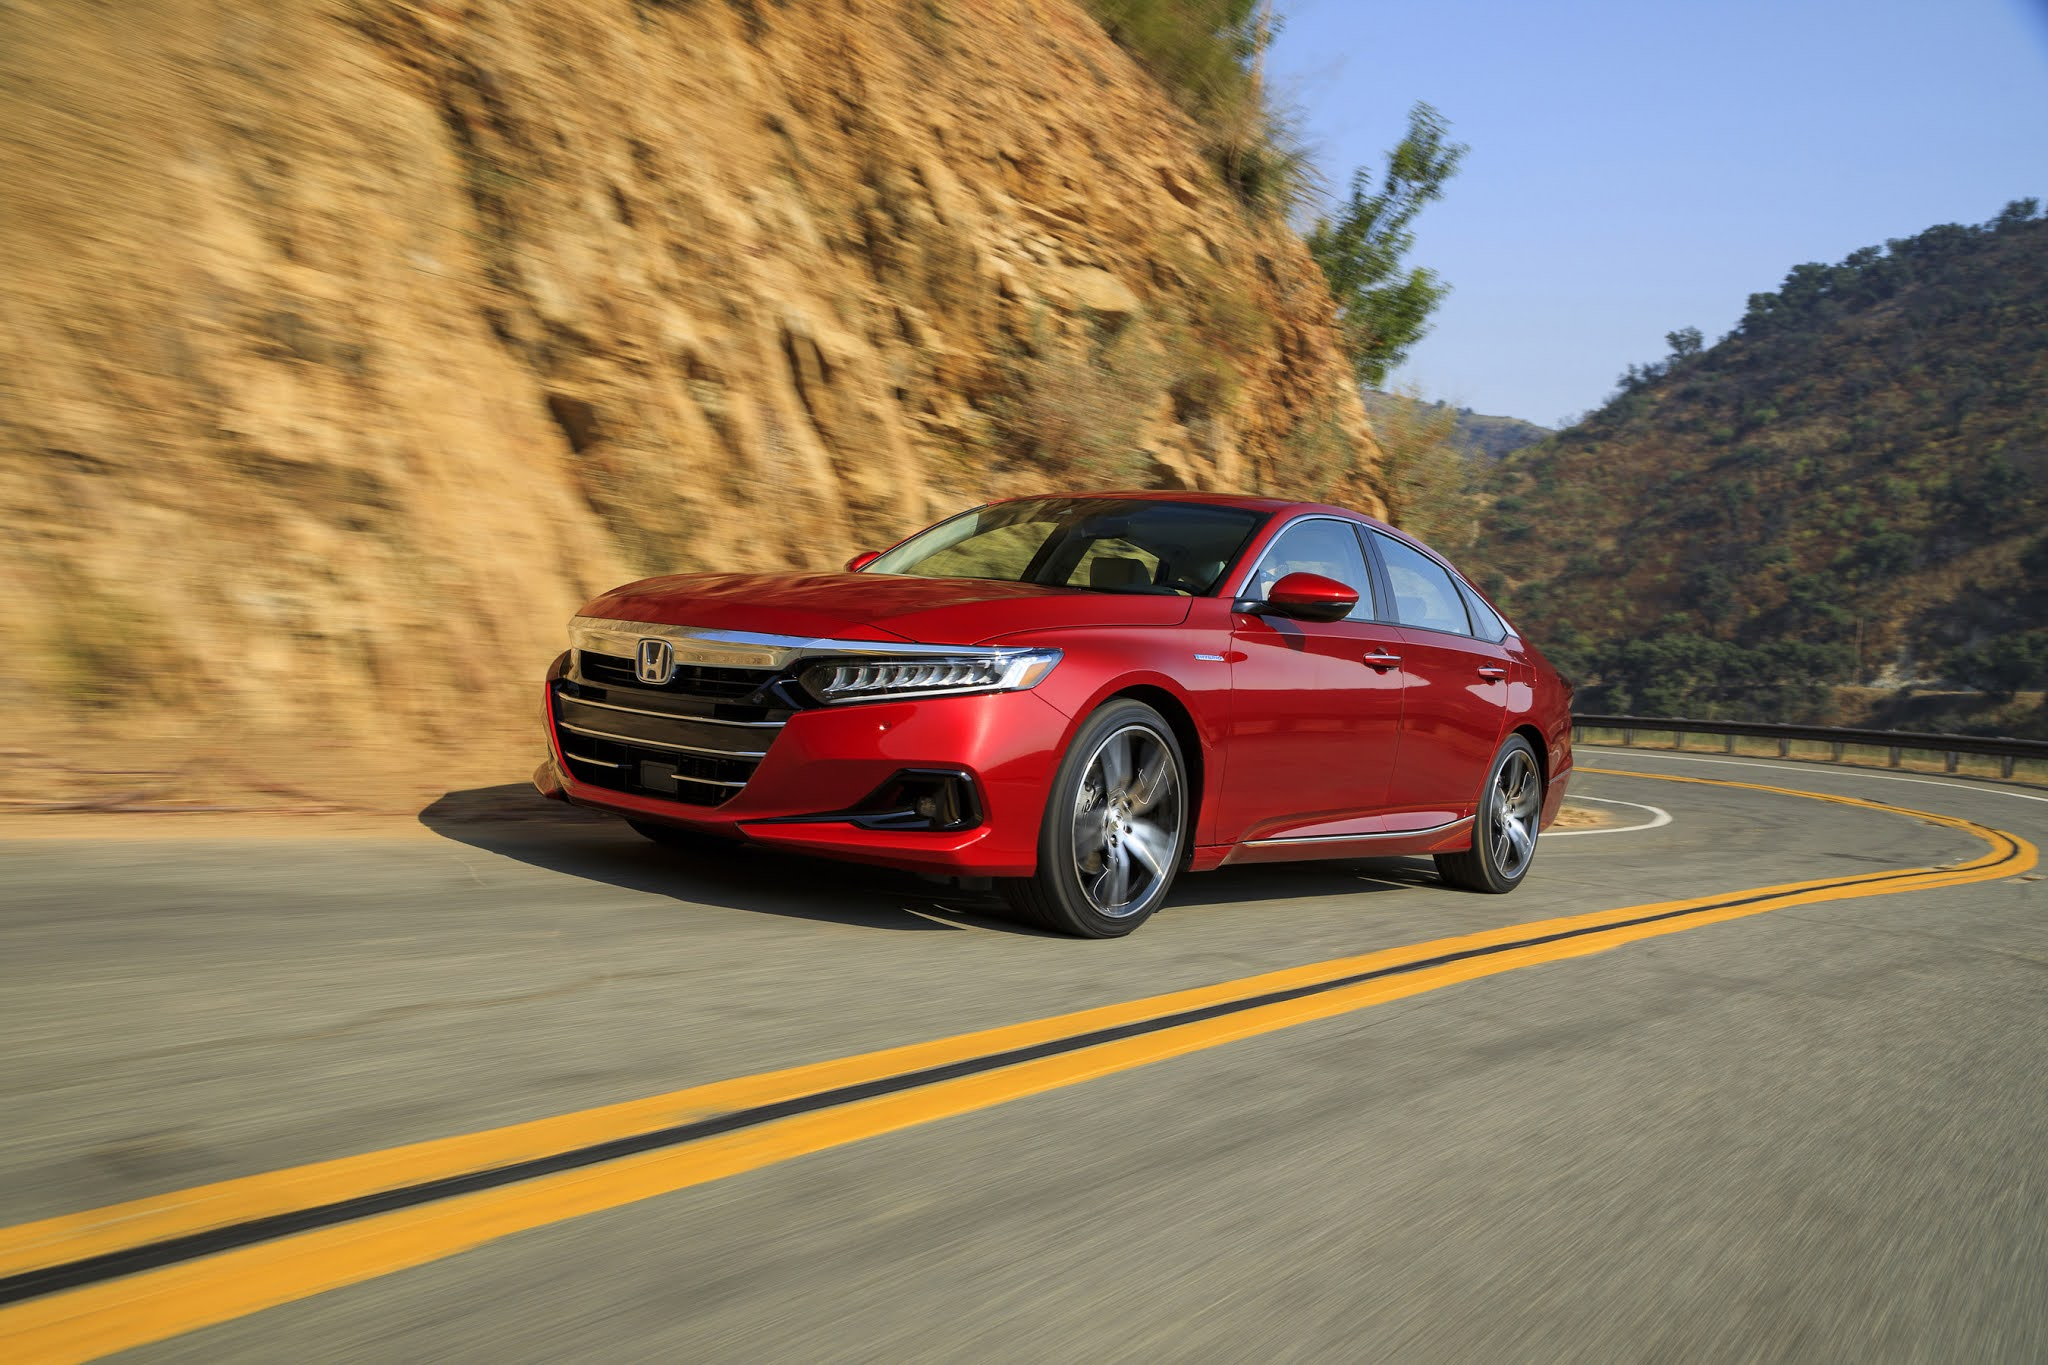 2021 Honda Accord Gets Refreshed Styling, Updated Hybrid Variant, New Sport Special Edition Trim, plus Wireless Apple CarPlay and Android Auto Integration